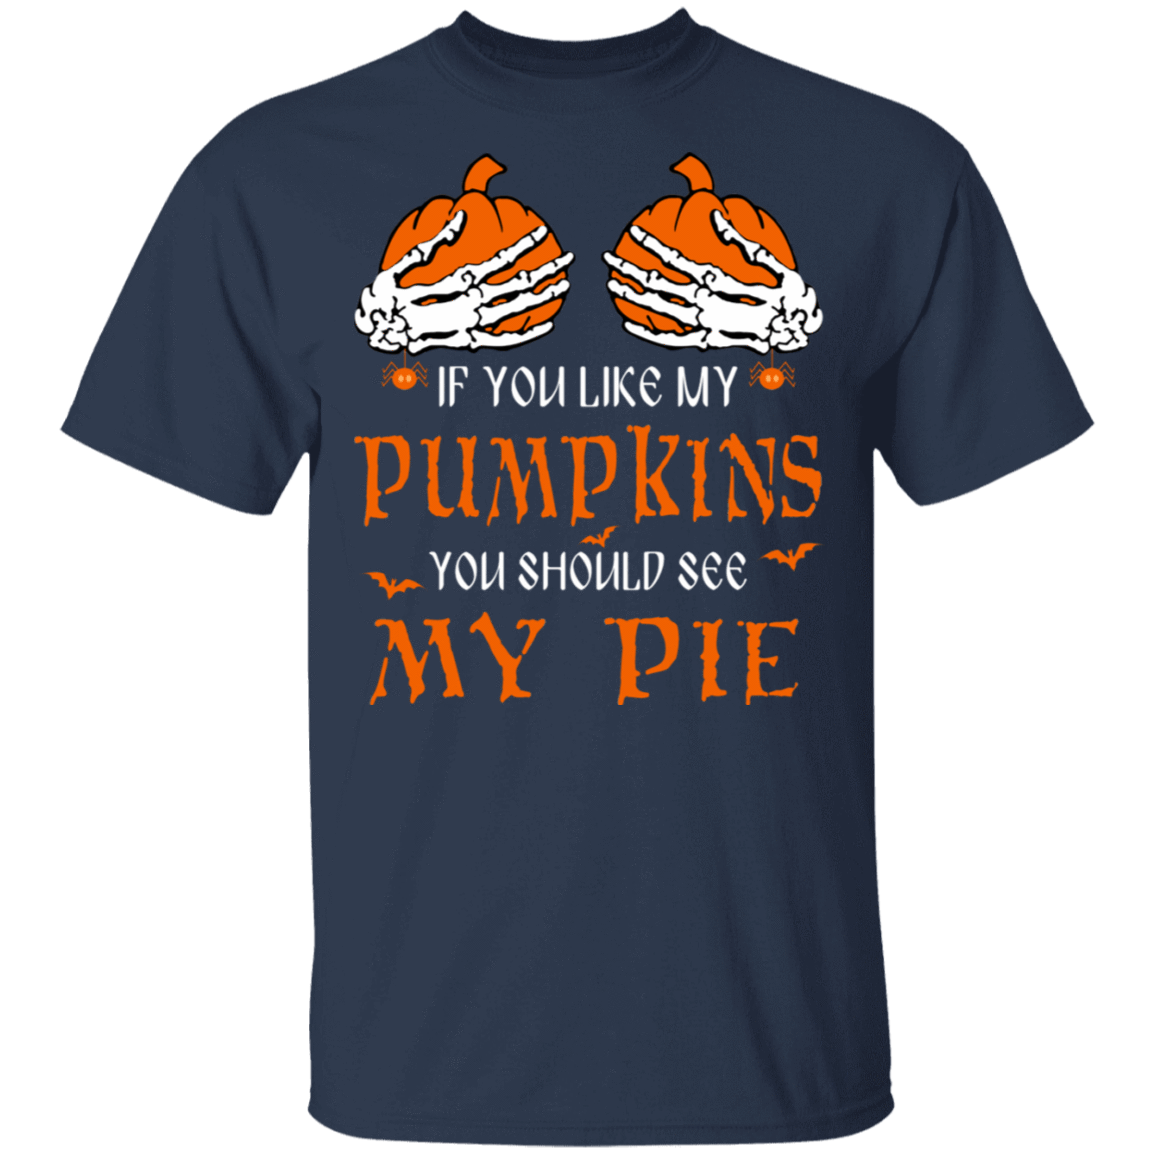 If You Like My Pumpkins You Should See My Pie T-Shirts, Hoodies, Tank 22-111-79240724-250 - Tee Ript